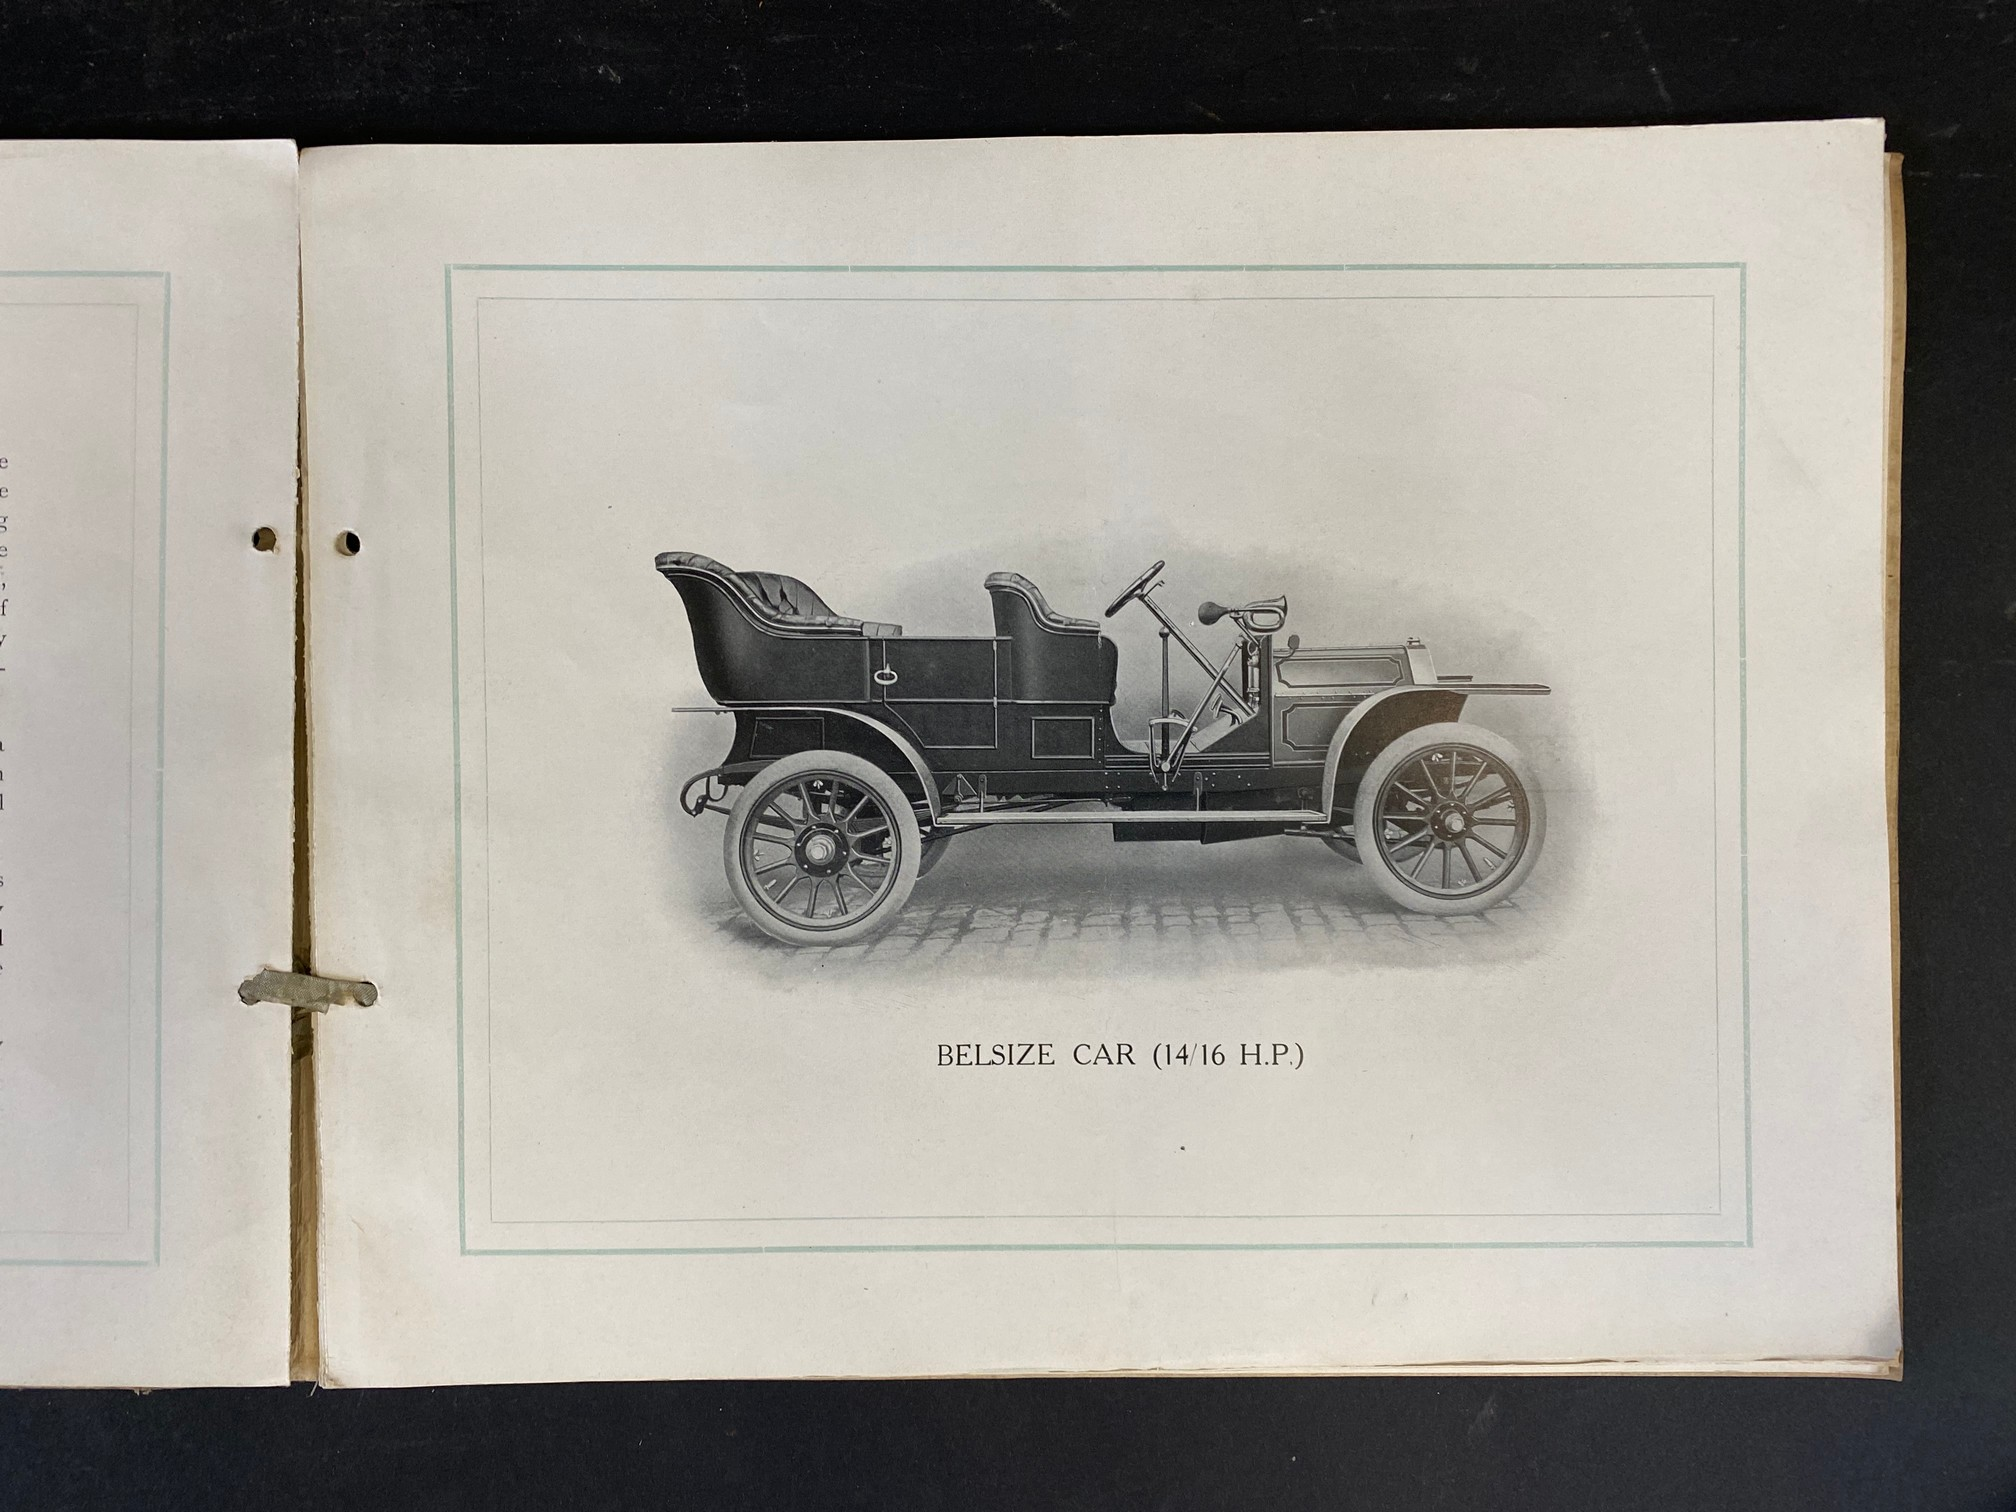 A Belsize car brochure, 1908 featuring a 14/16hp, the 20hp, the 28hp and the 40hp. - Image 2 of 5